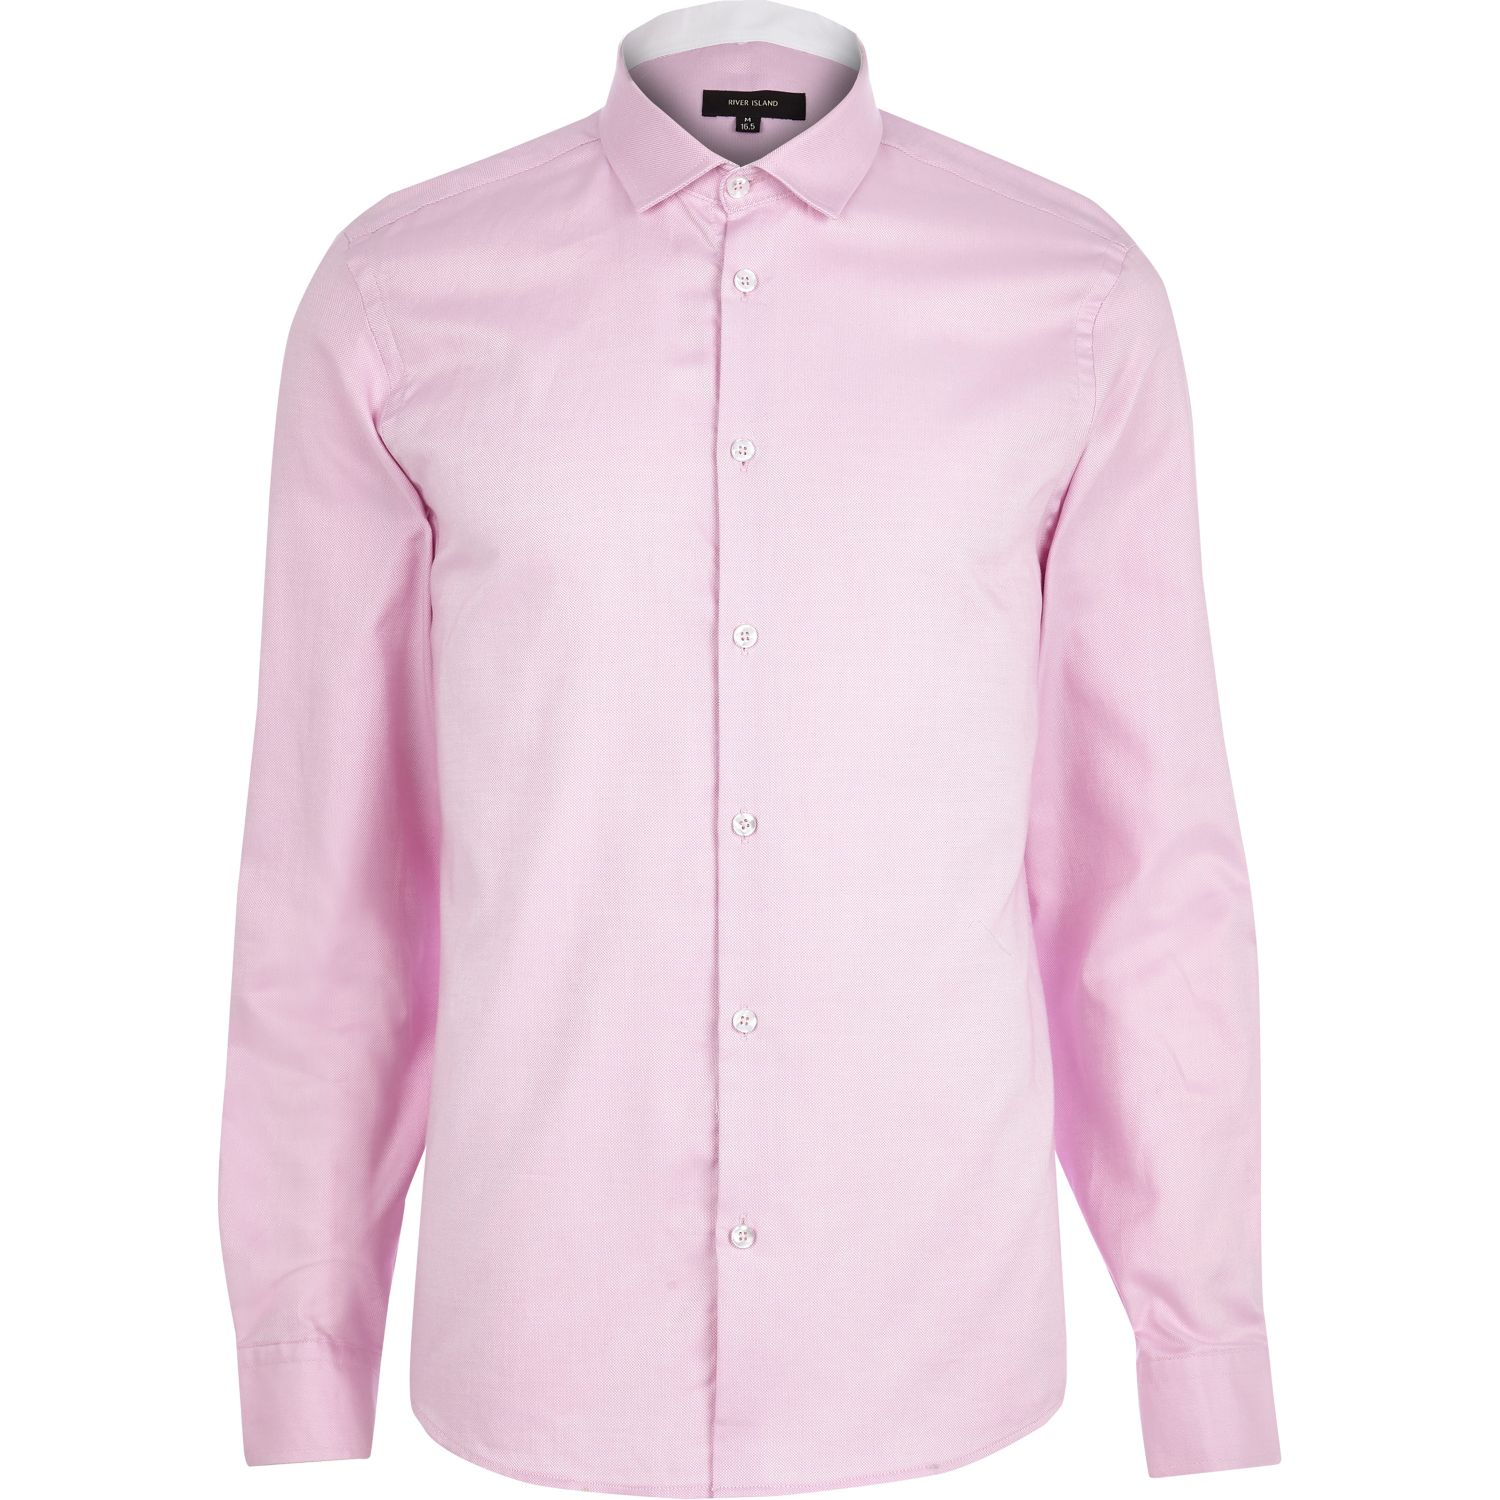 River island pink oxford shirt in pink for men lyst for Pink oxford shirt men